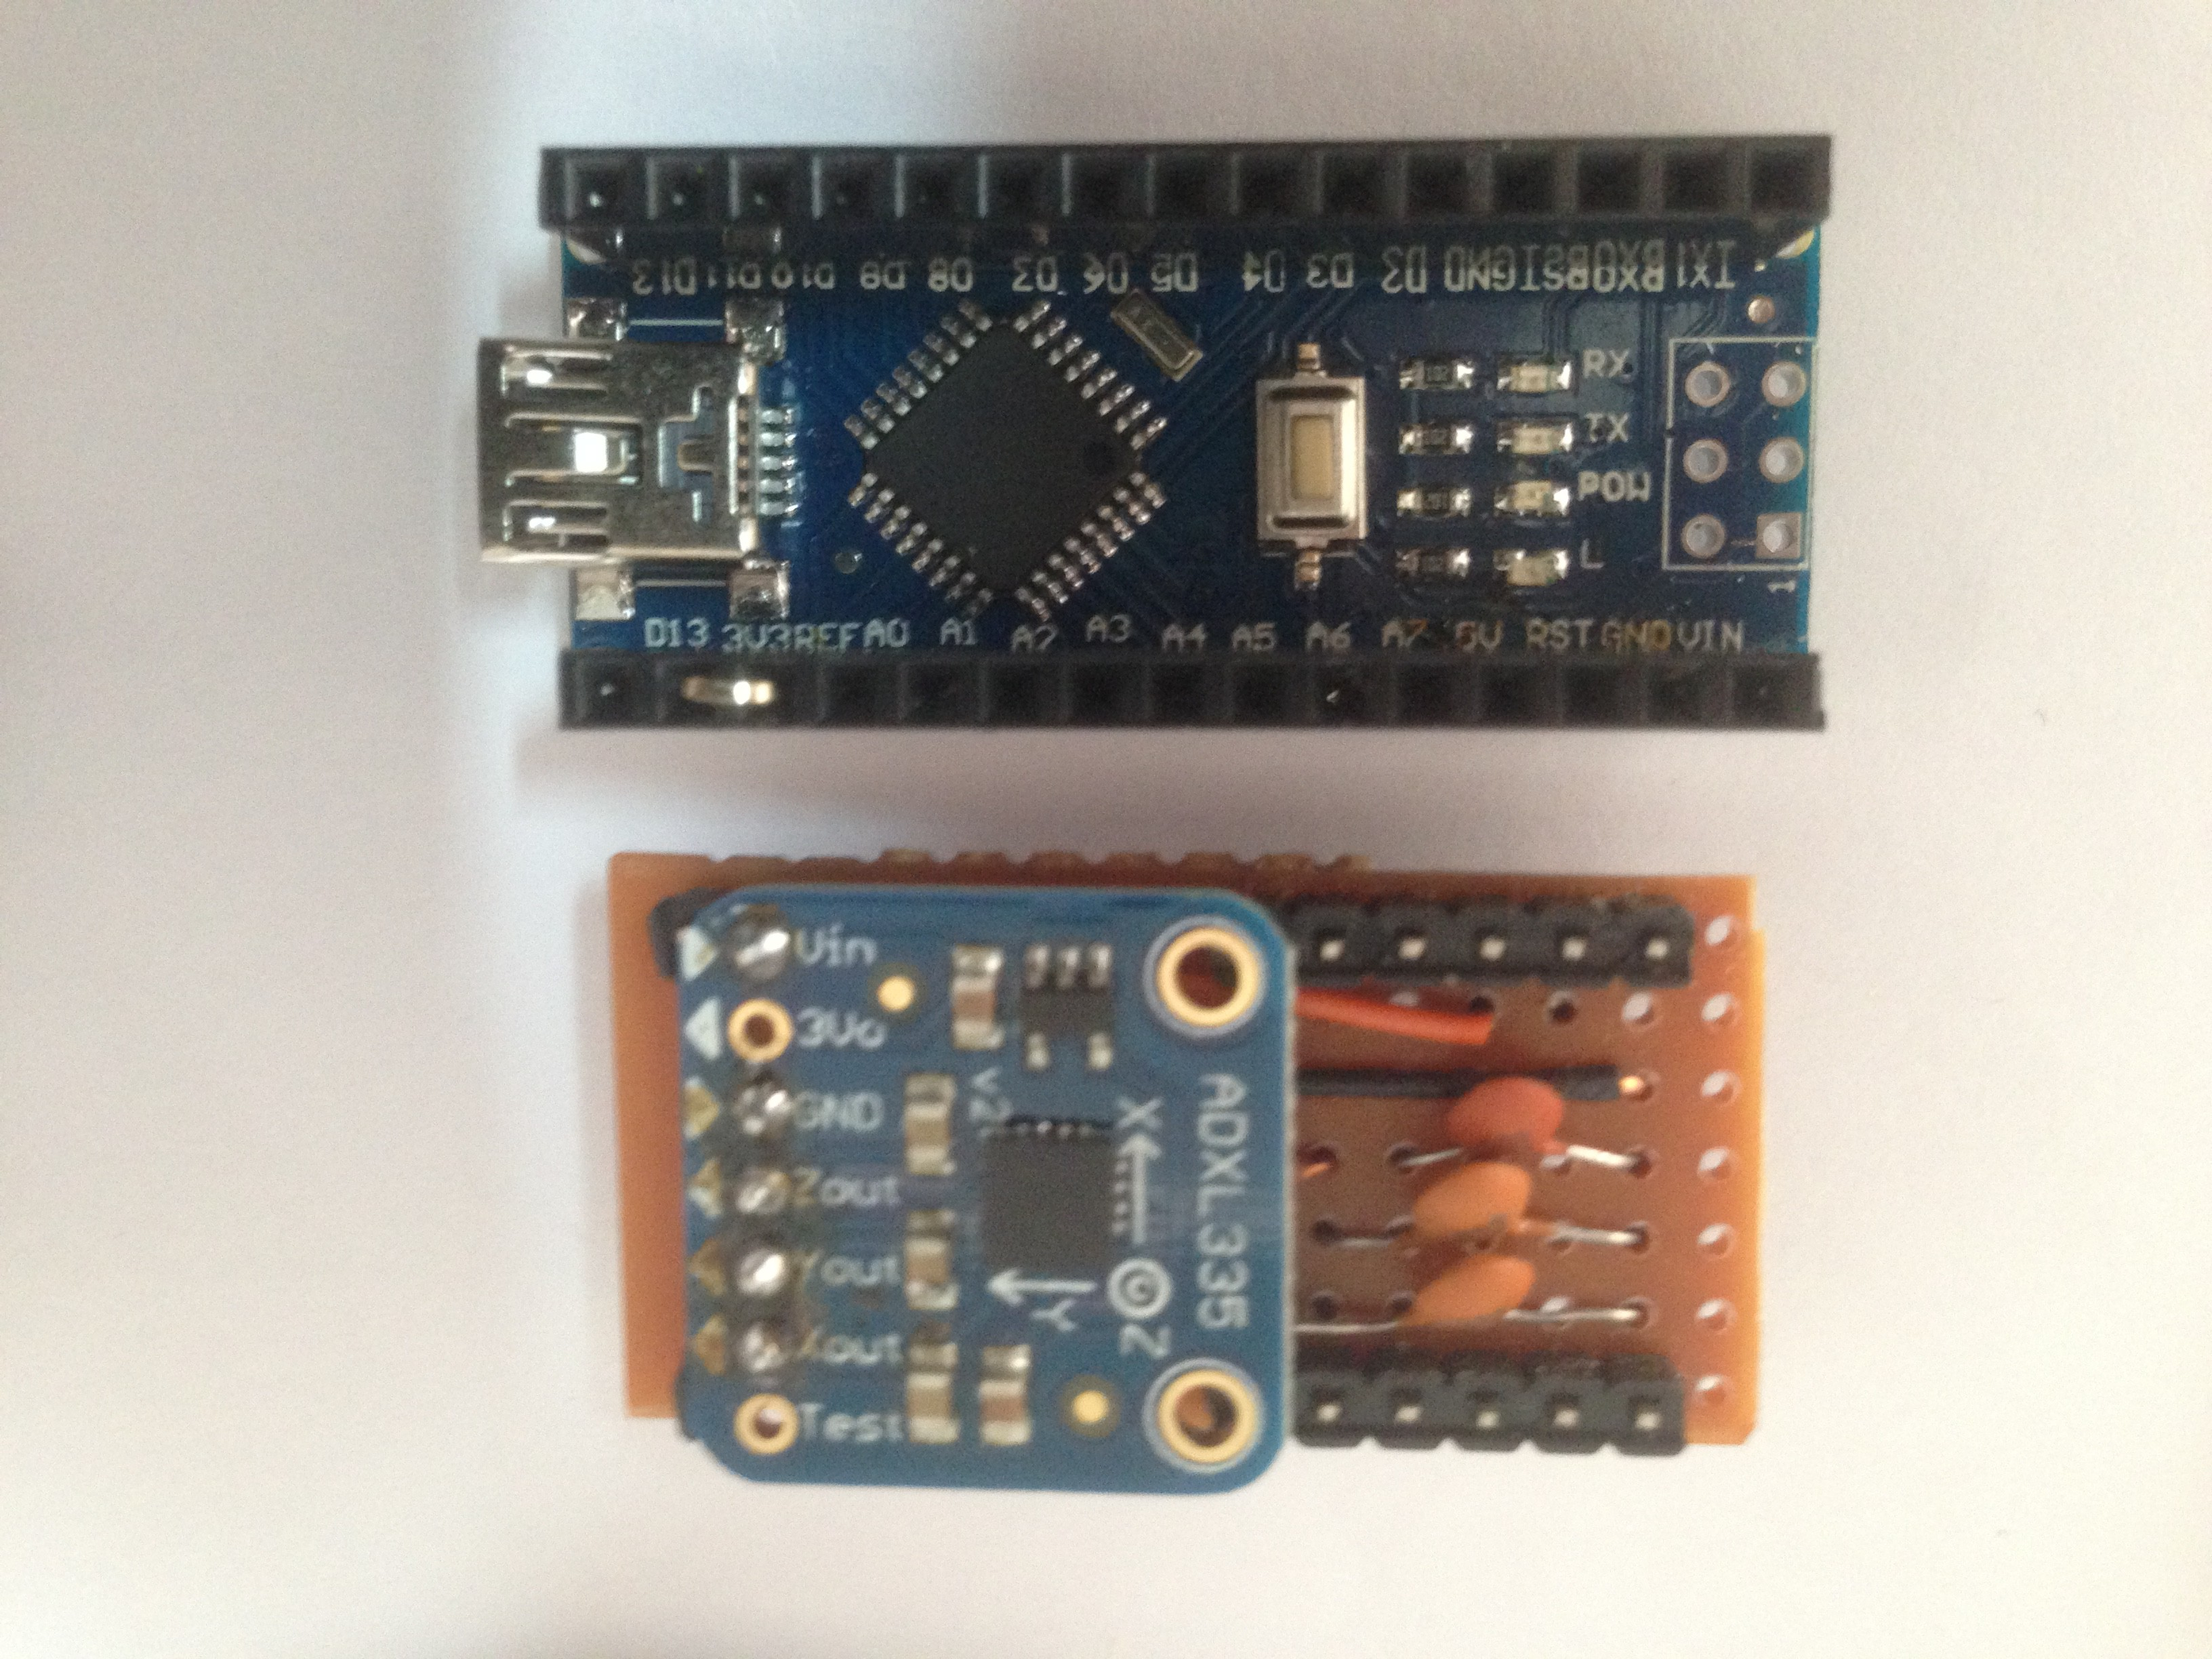 Open Source Fft Spectrum Analyzer Audio Make Diy Projects Howtos Electronics Adxl335 Header Pins Are Placed At The Sides Of Board And Arranged So This Fit Inside Single Line Sockets Soldered On Arduino Nano